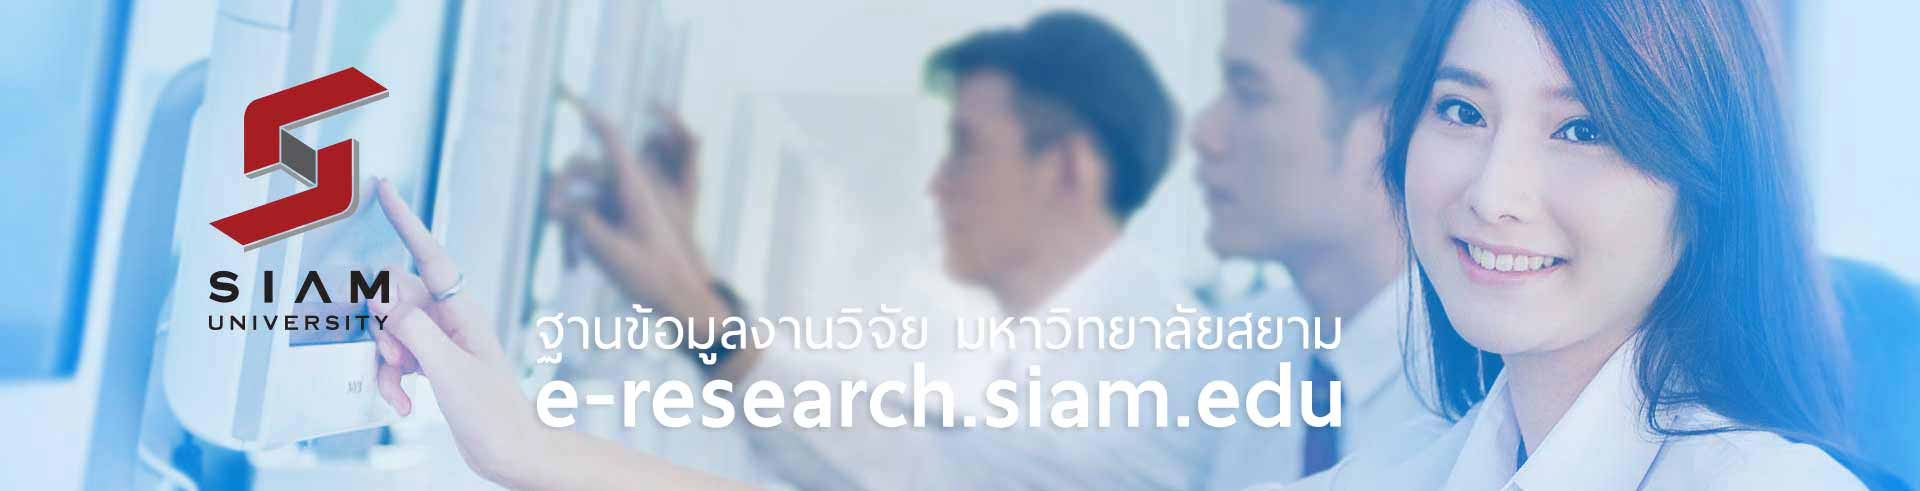 Revolutionizing Thailand's rural healthcare and mental health illness treatments through telemedicine - video conferencing - ฐานข้อมูลงานวิจัย มหาวิทยาลัยสยาม